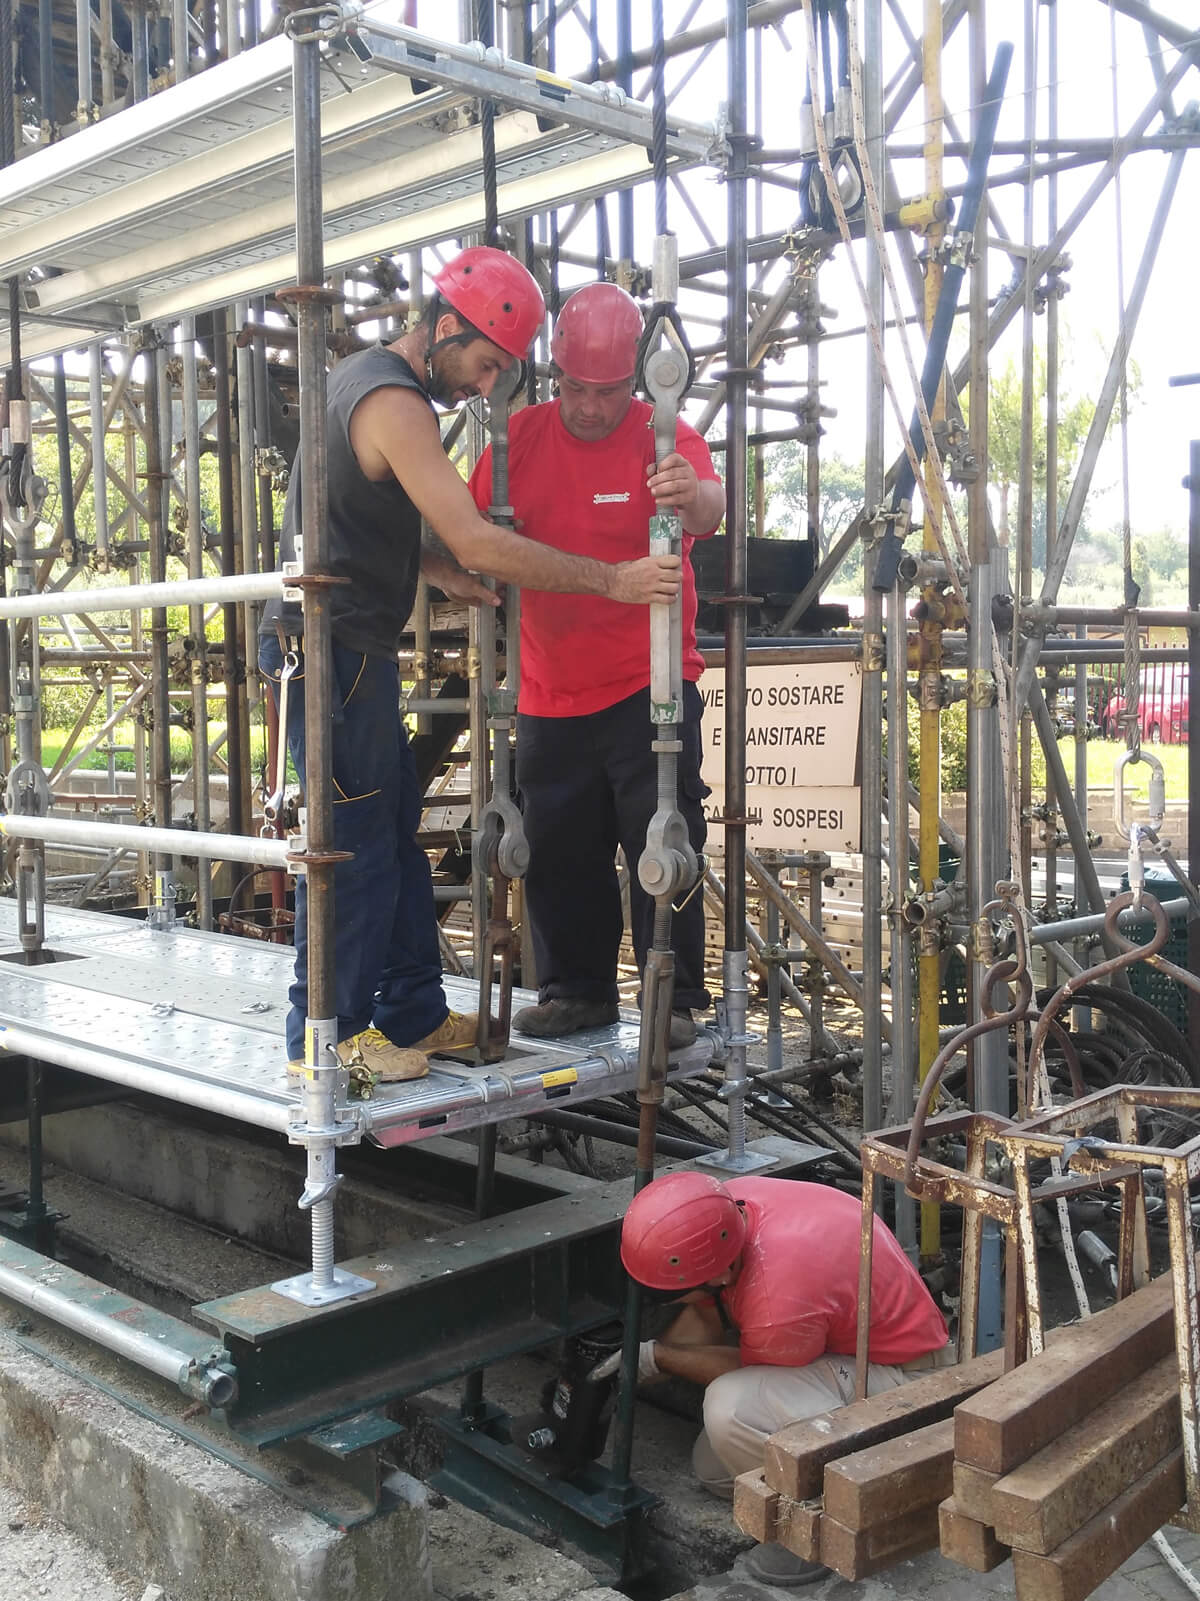 workers mounting the hydraulic piston beneath the feet of the scaffold